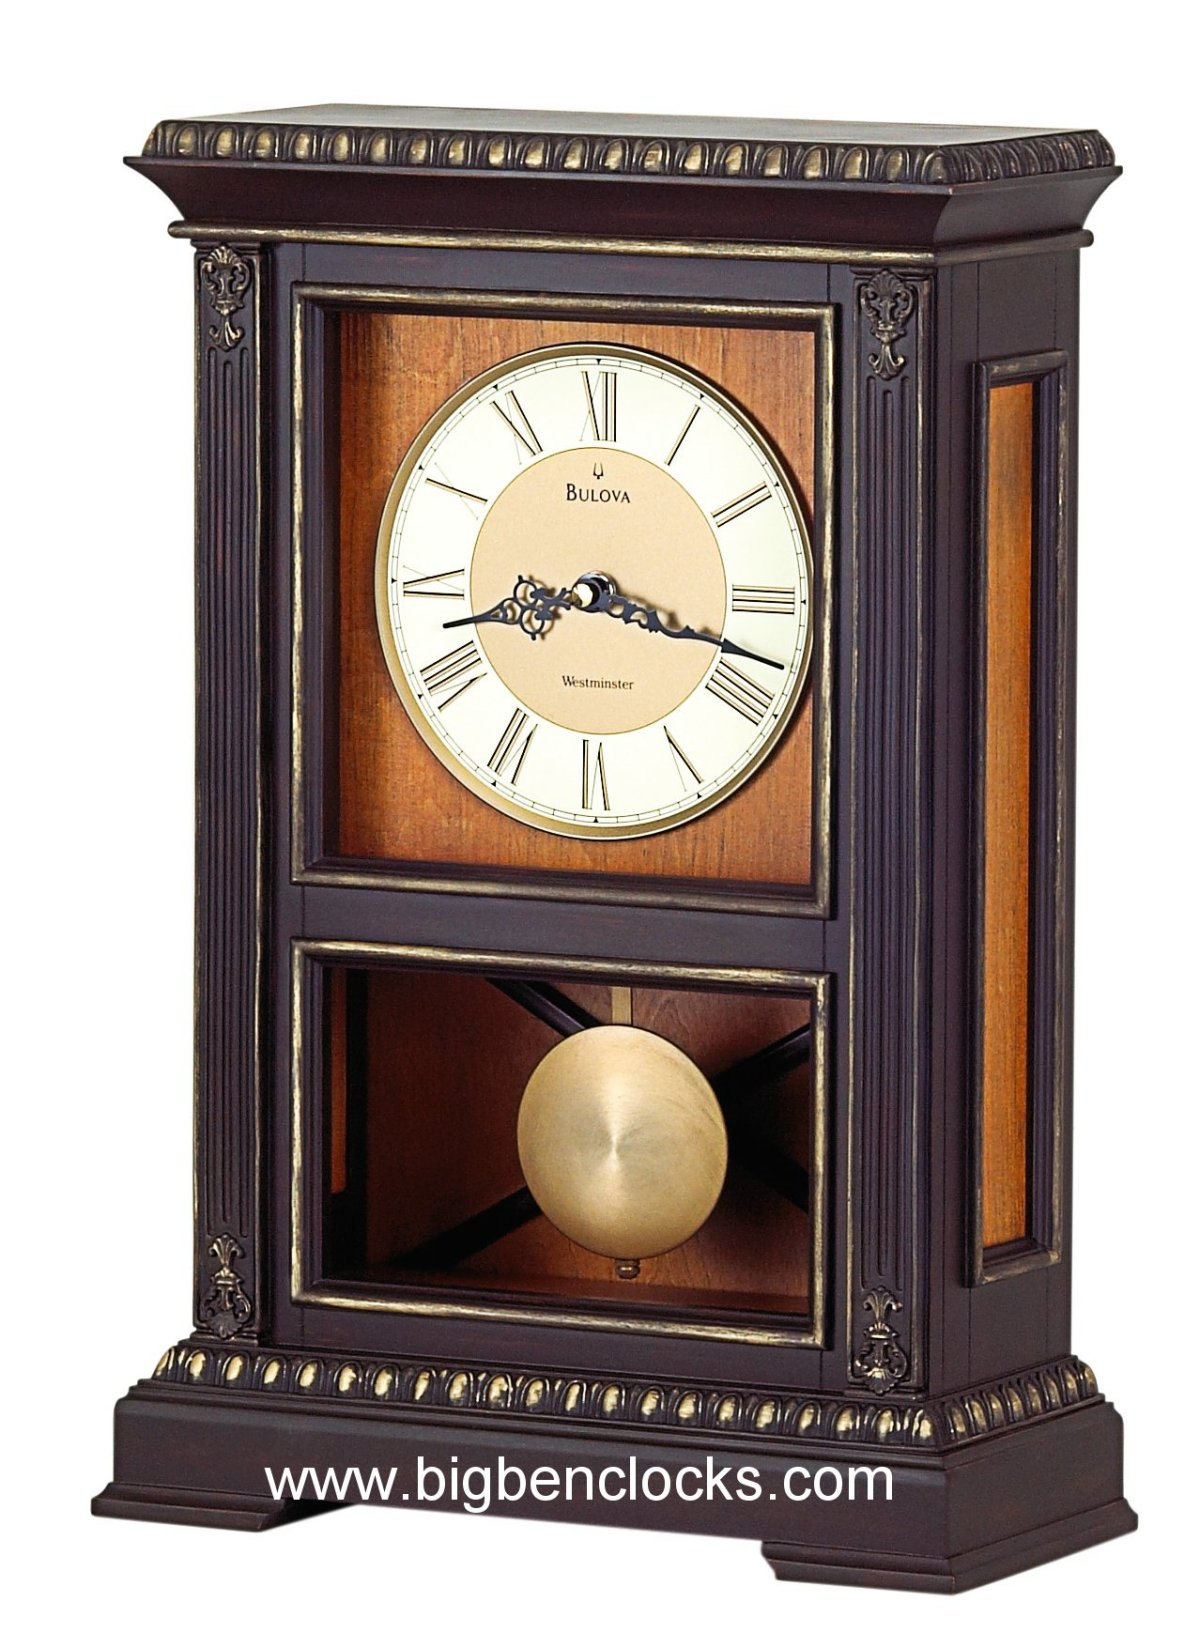 Bulova Mantel Clock | Bulova Clock | Brass Mantel Clocks